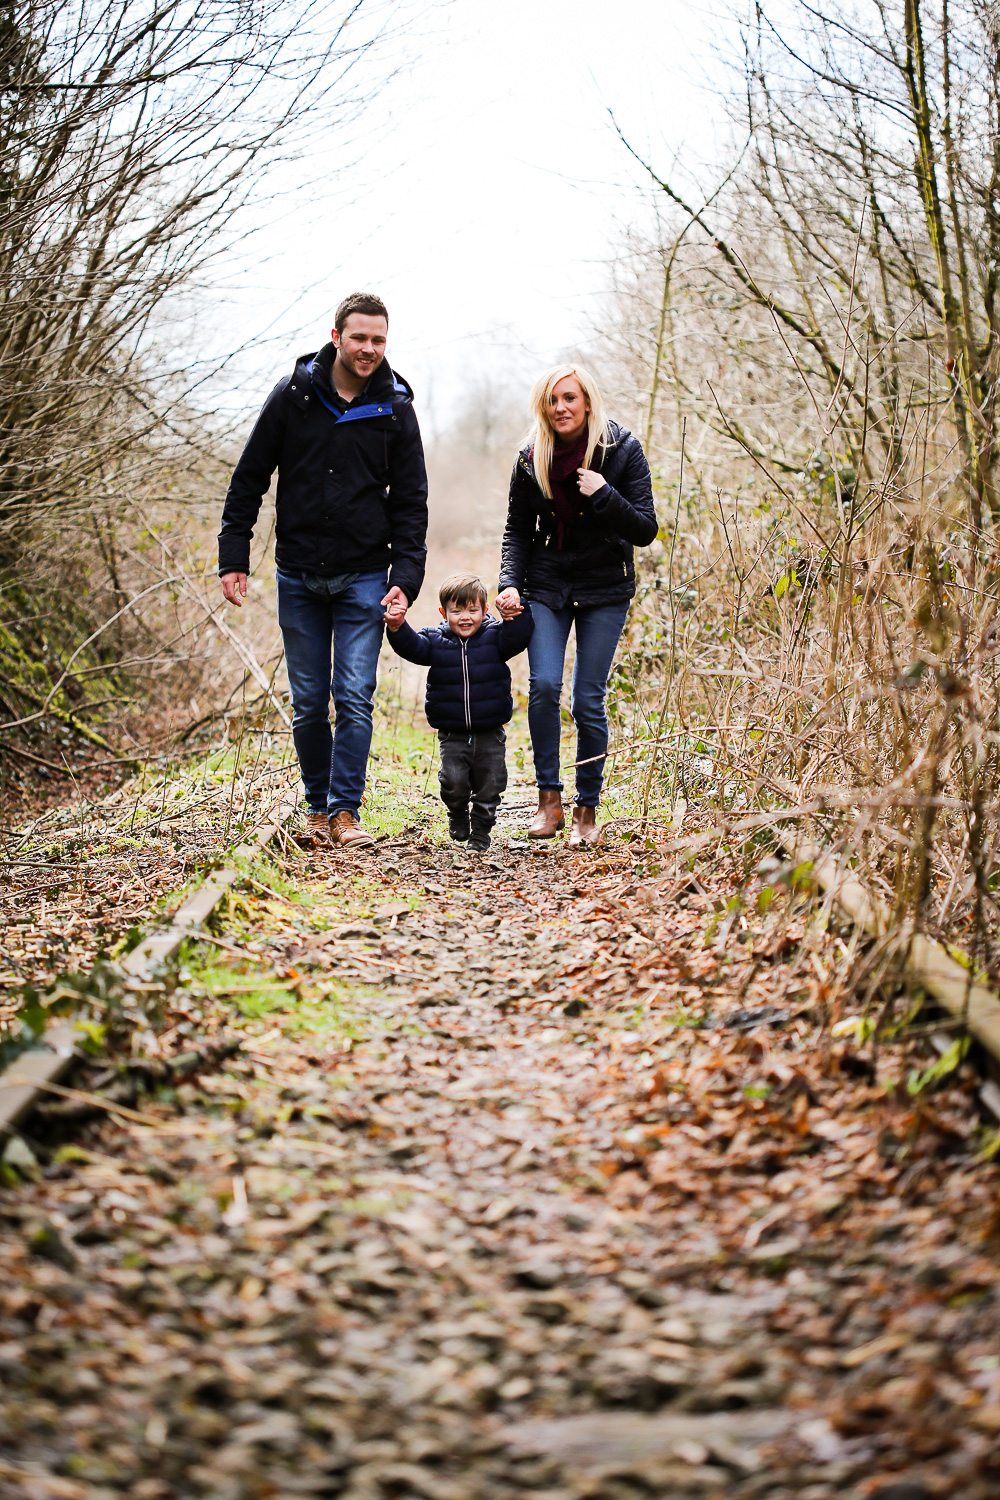 south wales family portraits - hannah timm photography